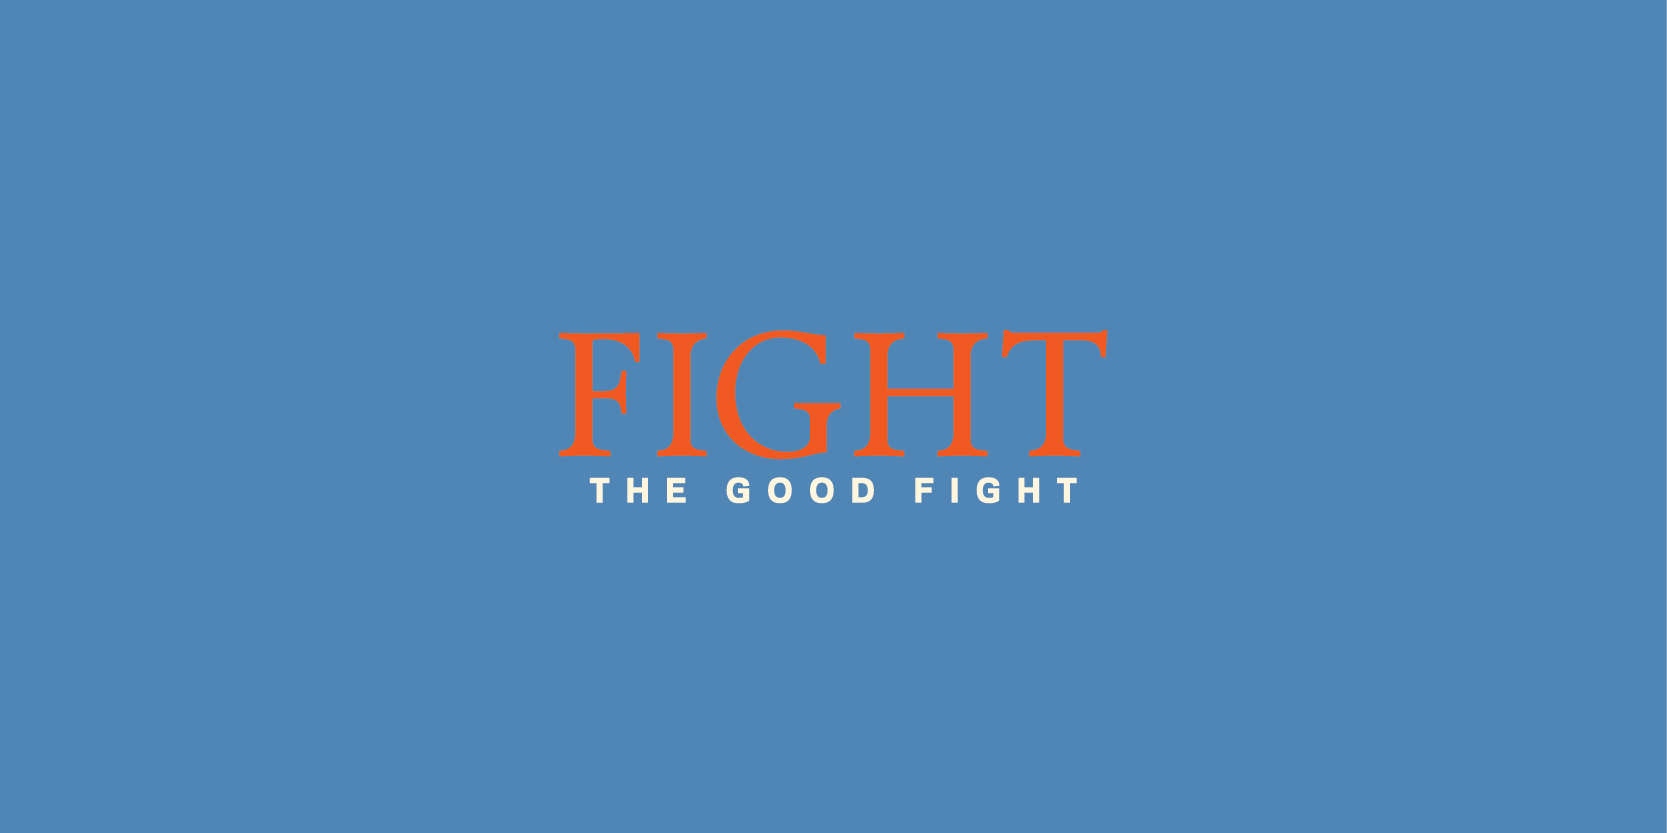 fightthegoodfight.png